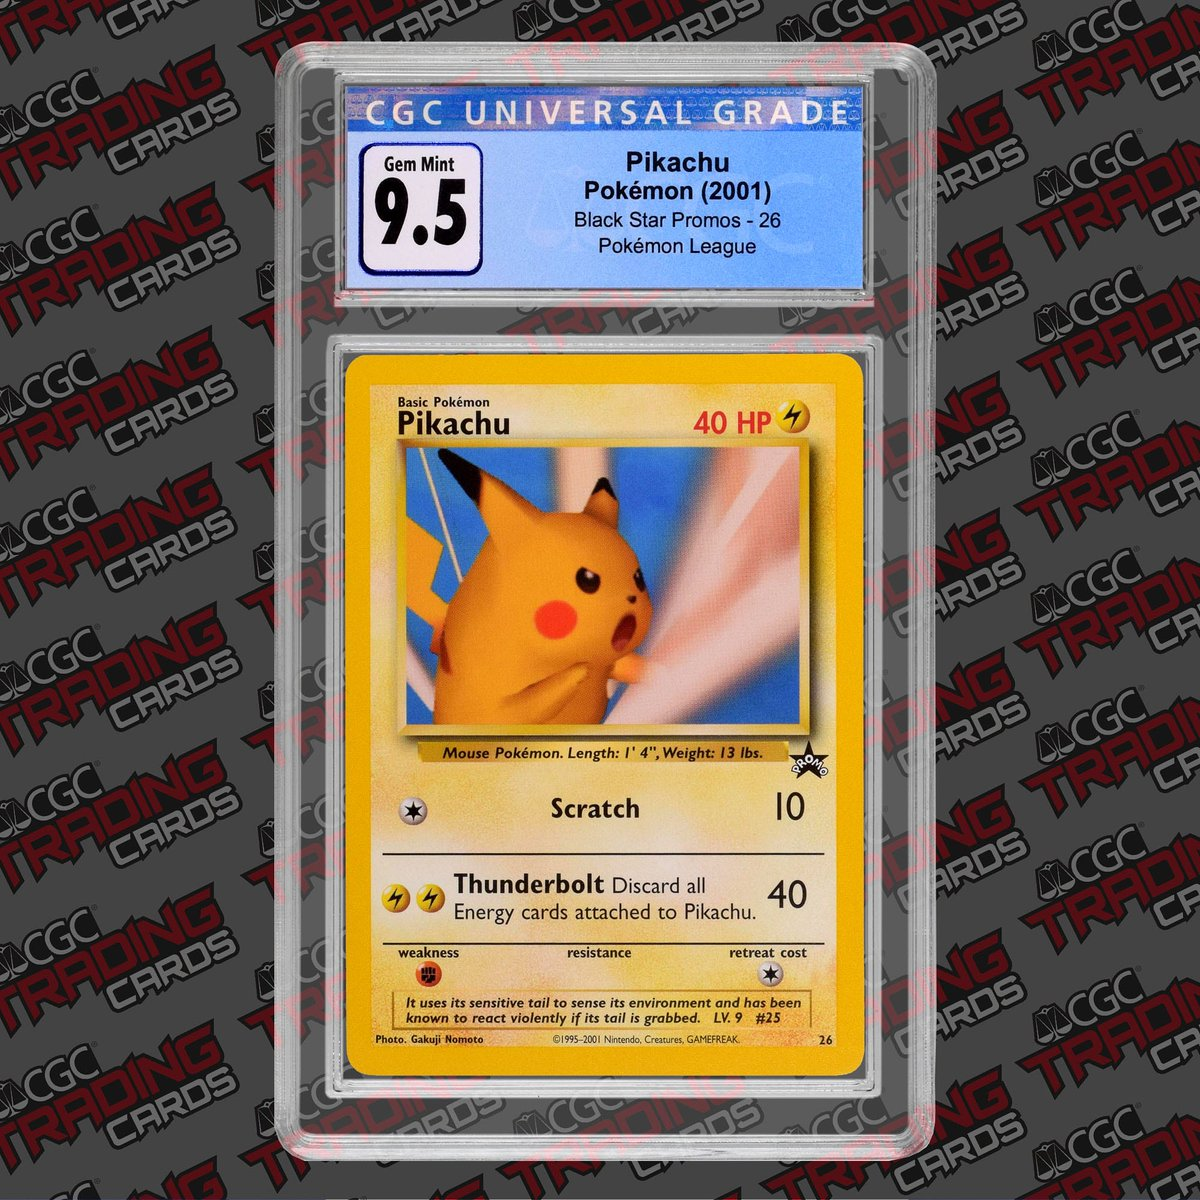 This Snap Pikachu used a photo taken from the original #PokémonSnap game released in 2001. Have you heard Nintendo is working on #PokémonSnap2!? Exciting! #CGC #CGCComics #CGCCards #CGCTradingCards #TCG #Pokémon #Pokemon #PokémonTCG #PokemonCollector #PokemonCards #PokemonTCG